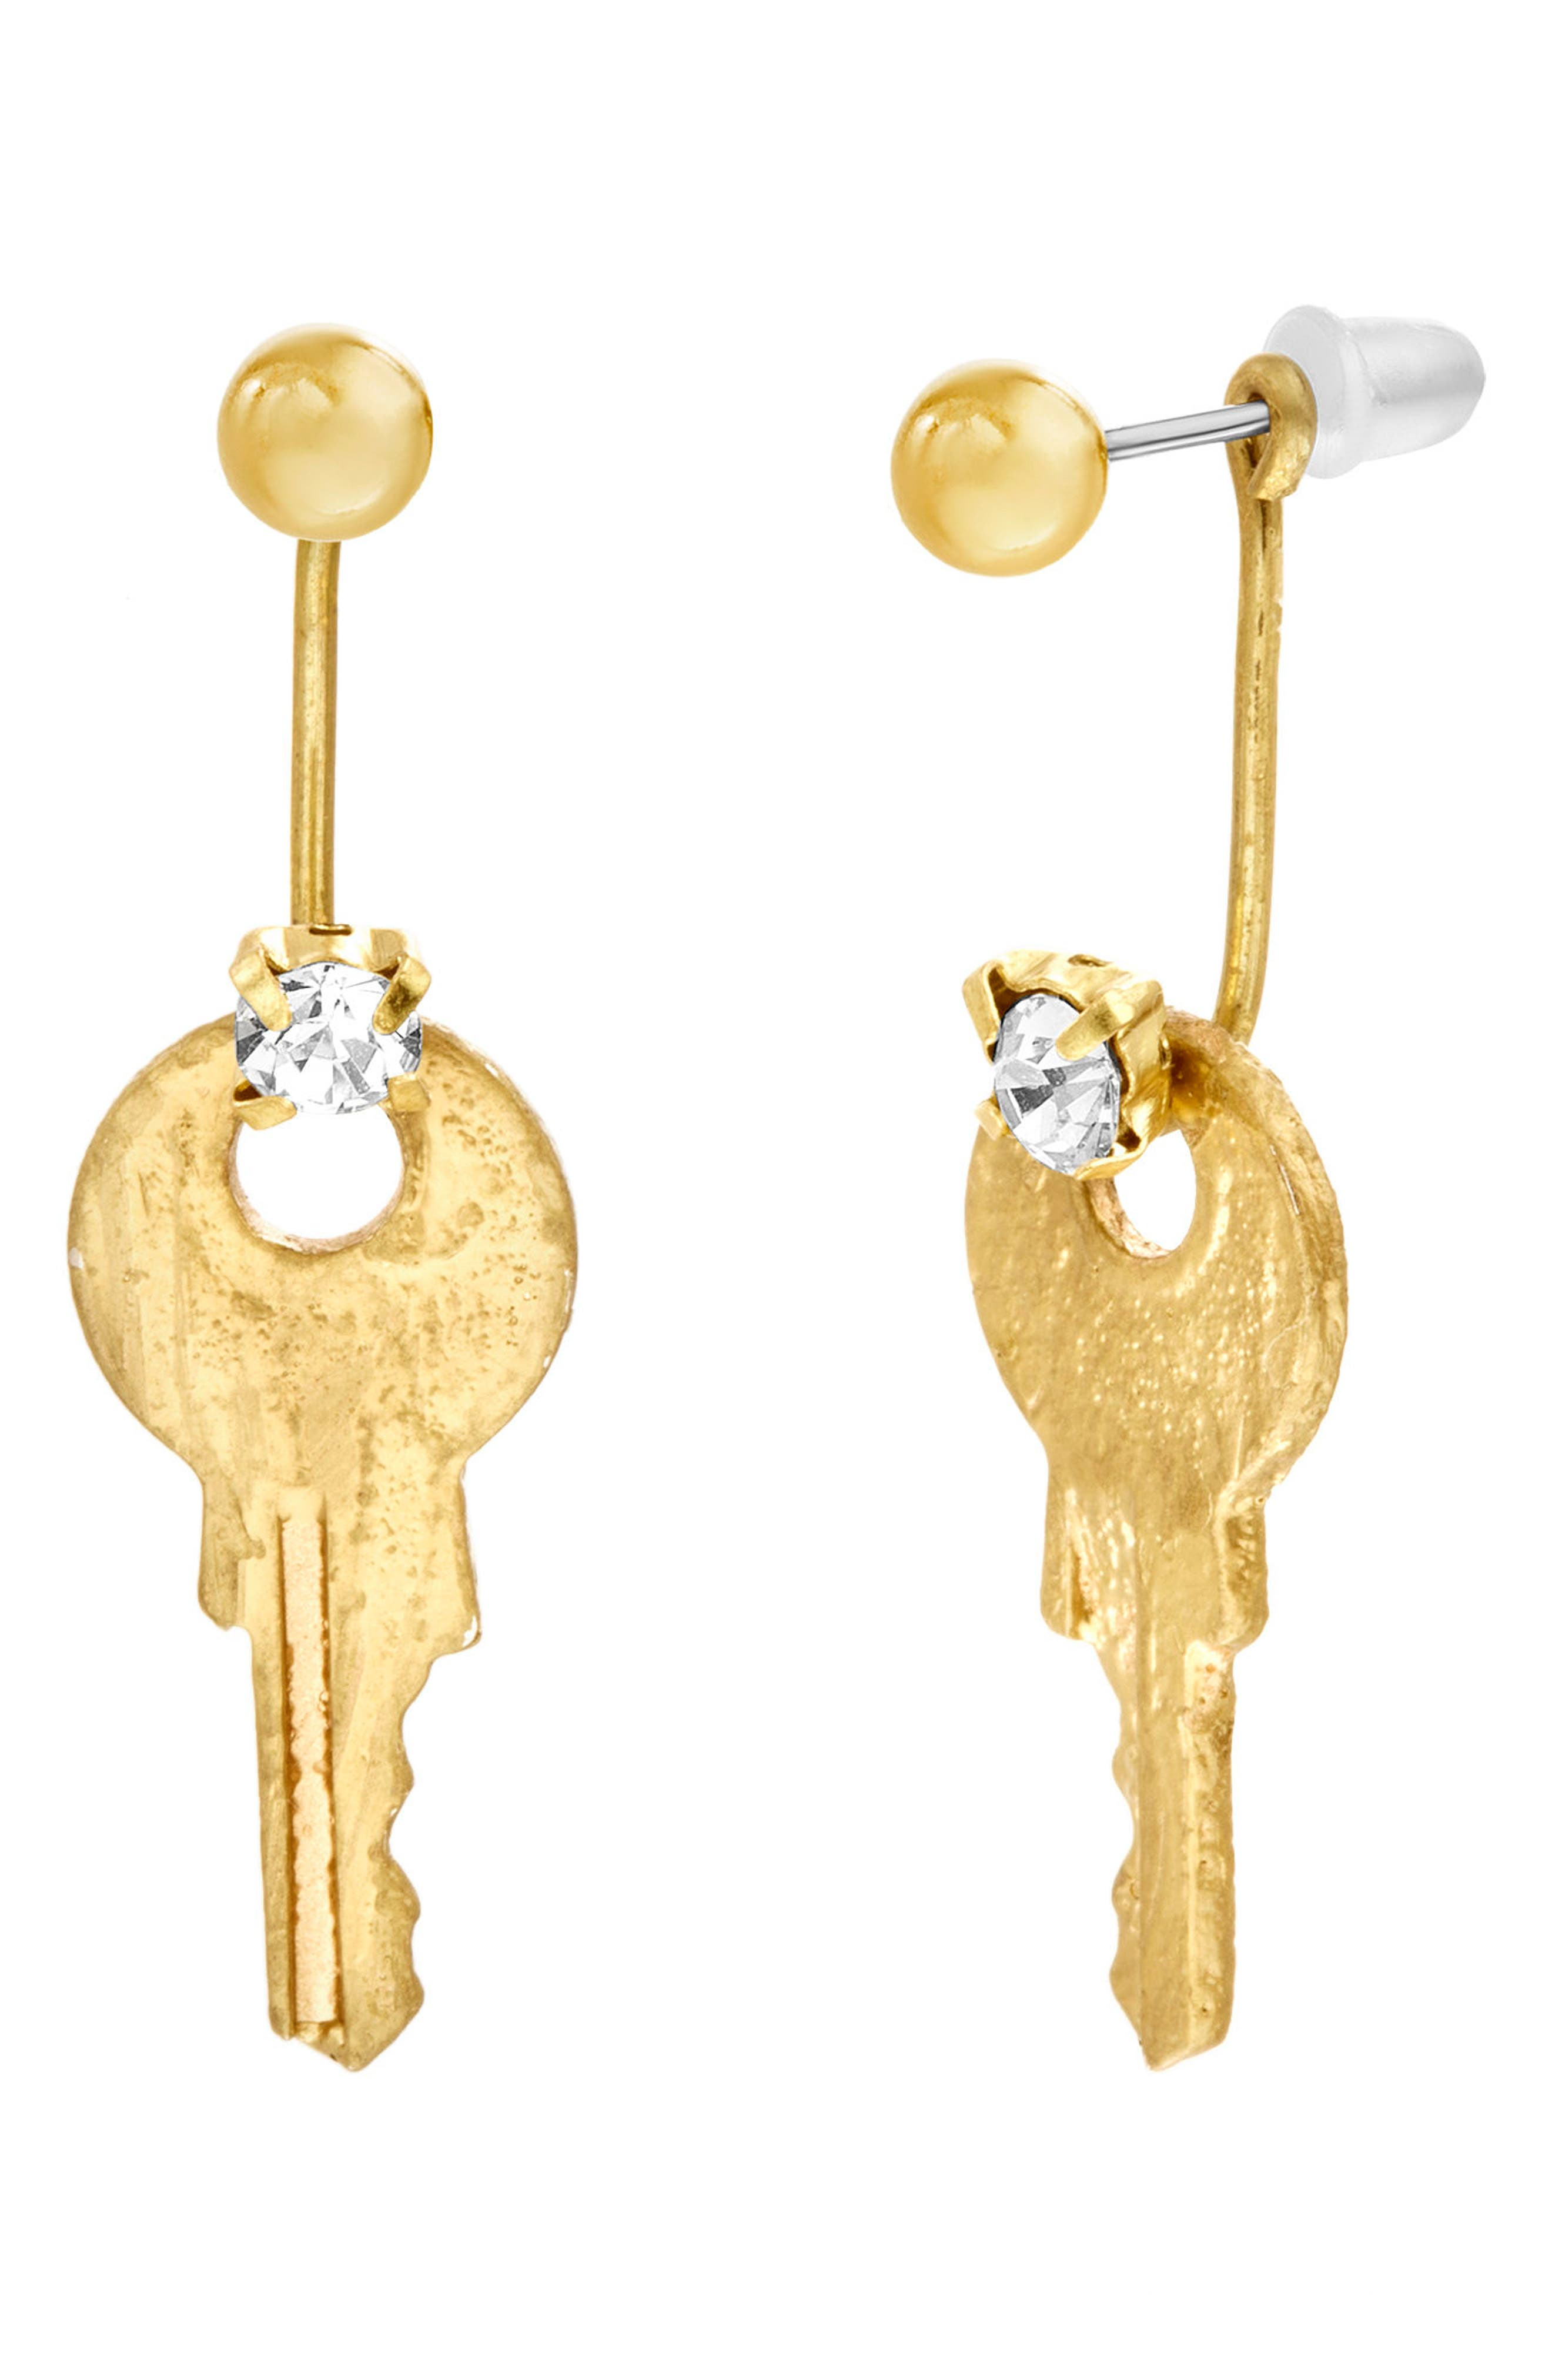 Key Statement Earrings,                             Main thumbnail 1, color,                             Gold